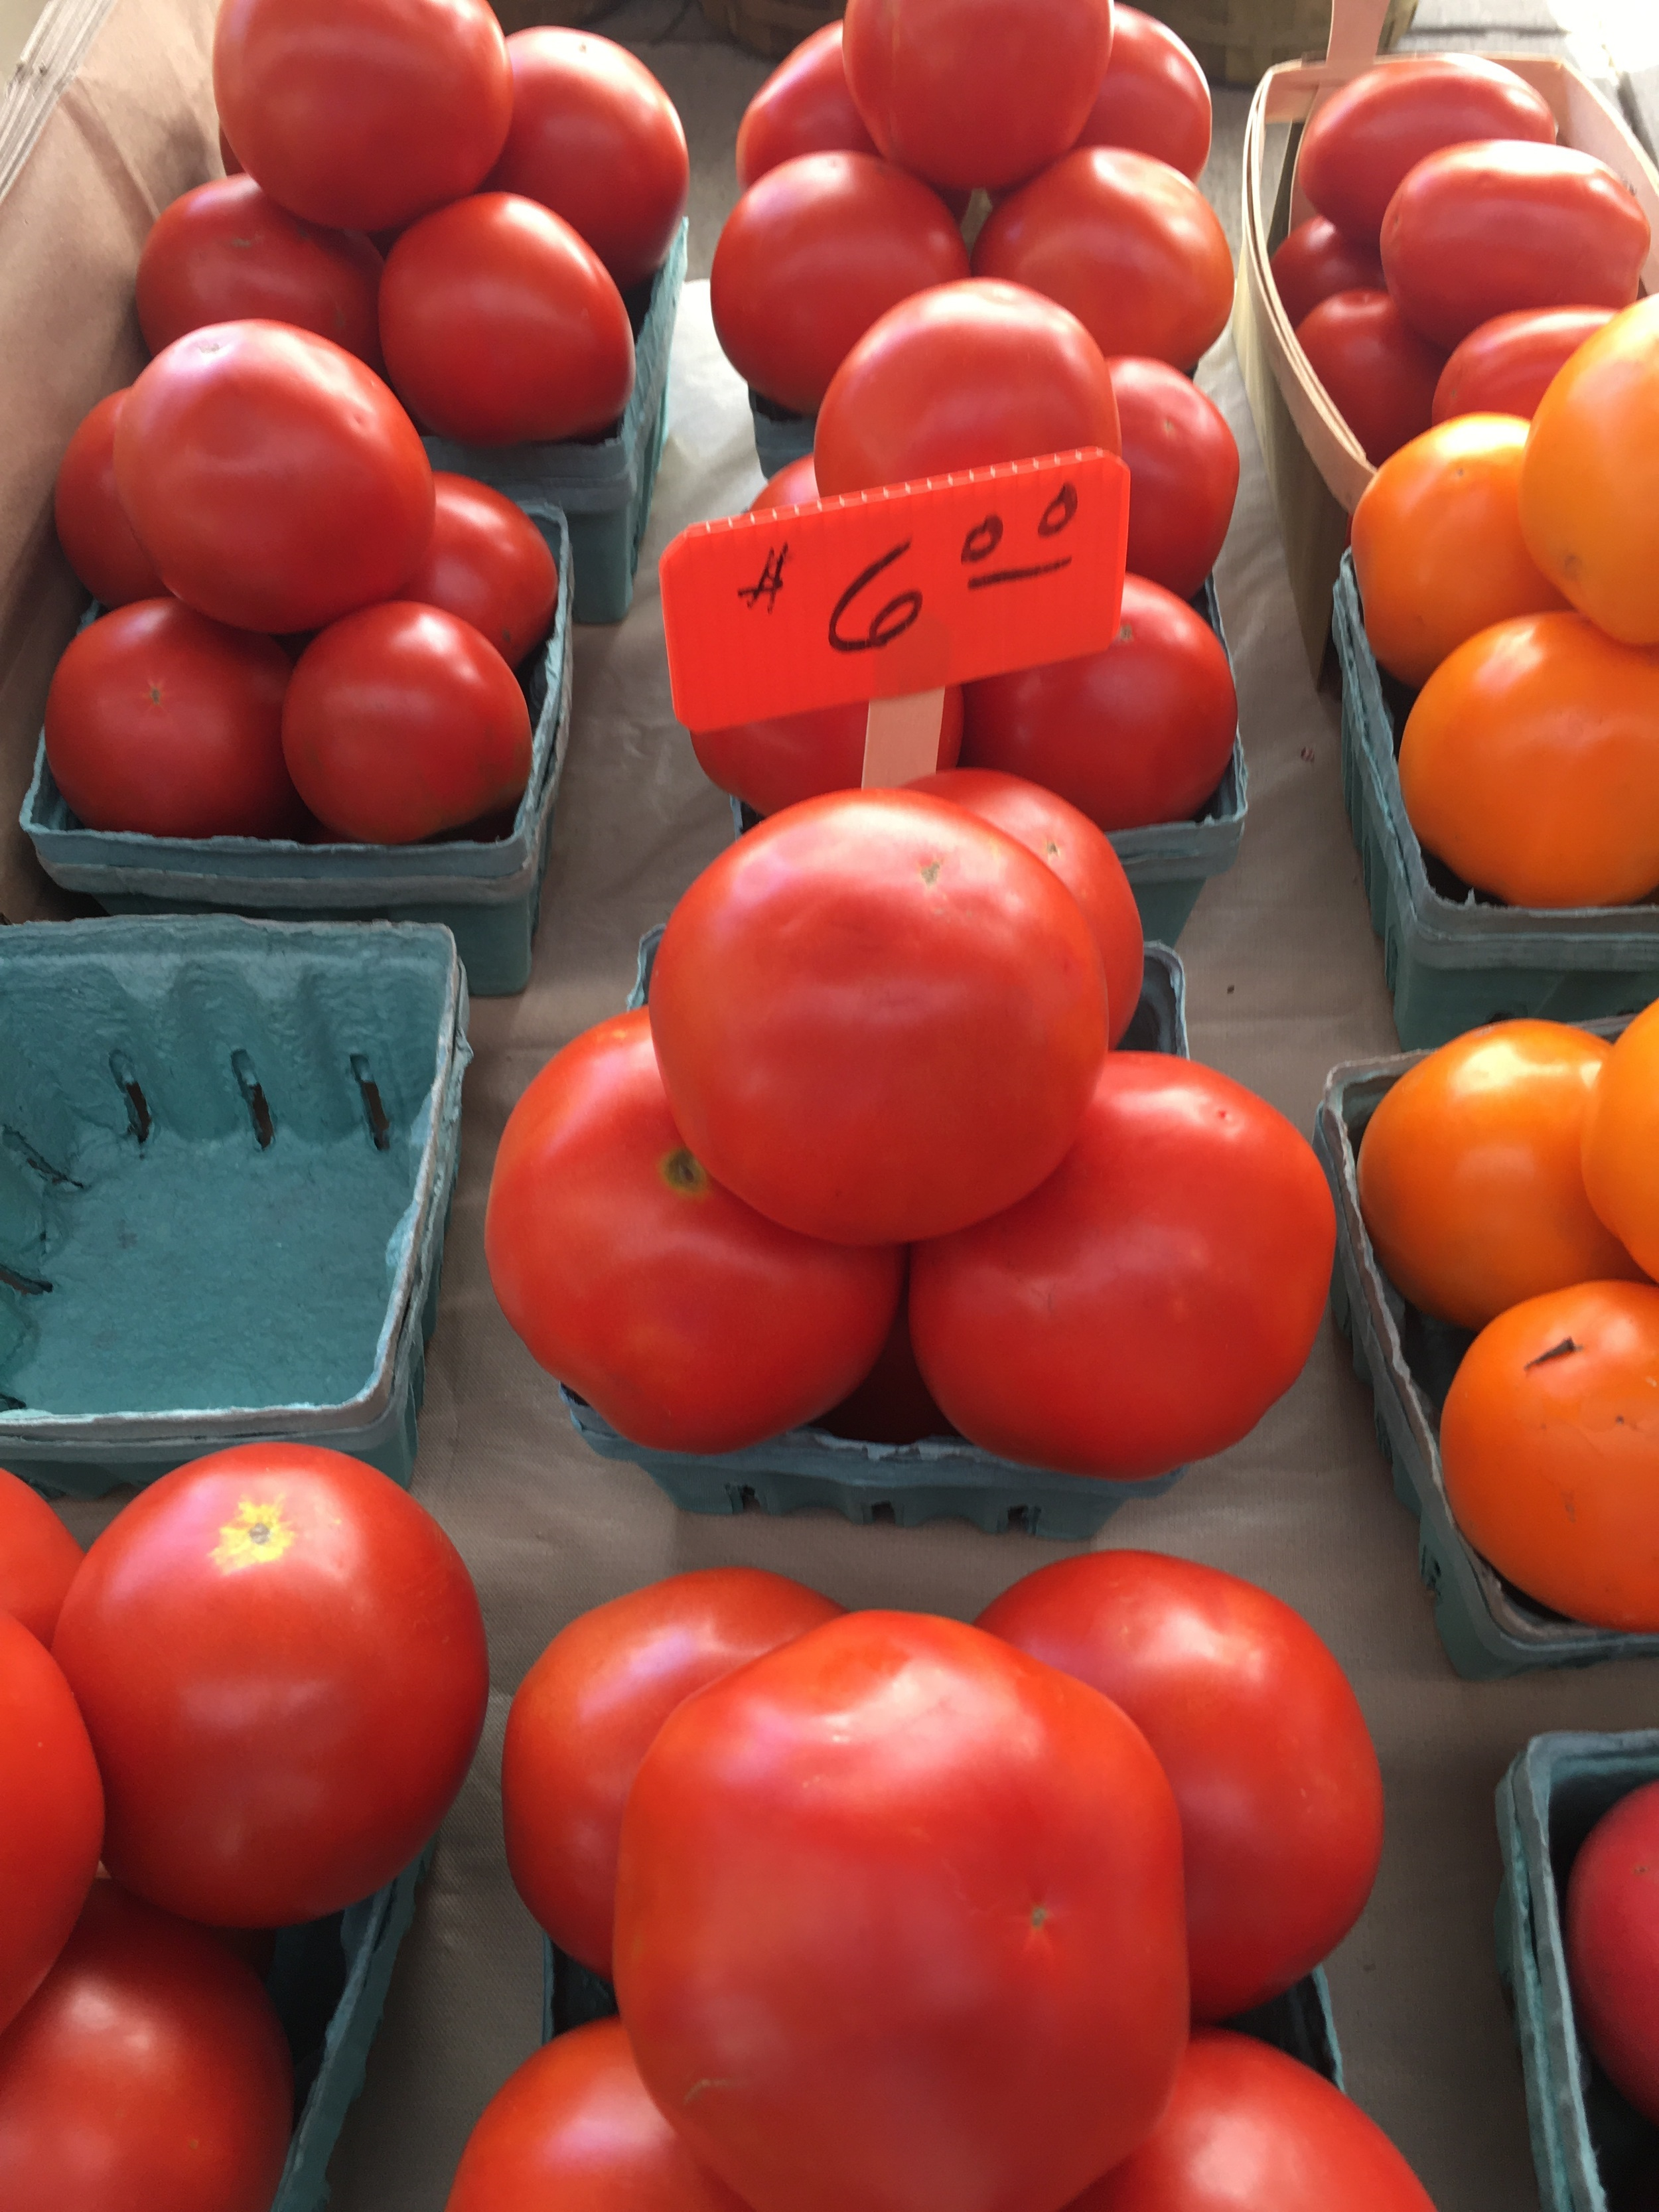 Nothing beats a fresh summer tomato.  There are many types of tomatoes so again, talk to the farmers and they can direct you if you do not know which kind you want.